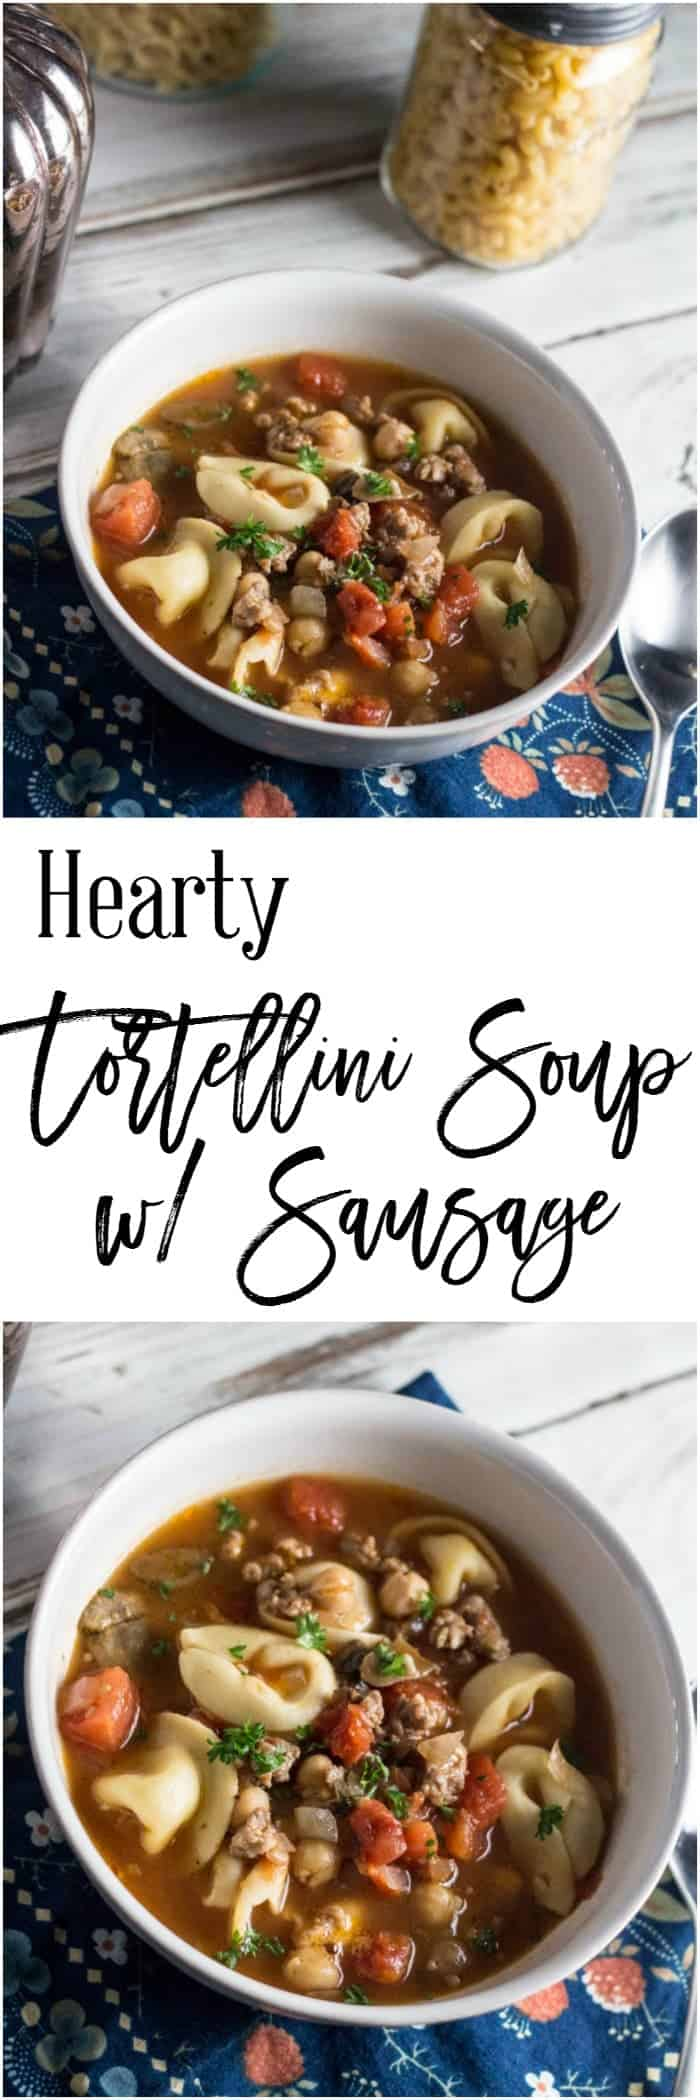 If you are looking for a soup that is hearty and delicious, look no further. This hearty tortellini soup with sausage is perfect for either a wonderful lunch.  This recipe is Weight Watcher friendly too, at only 7 SmartPoints per serving!